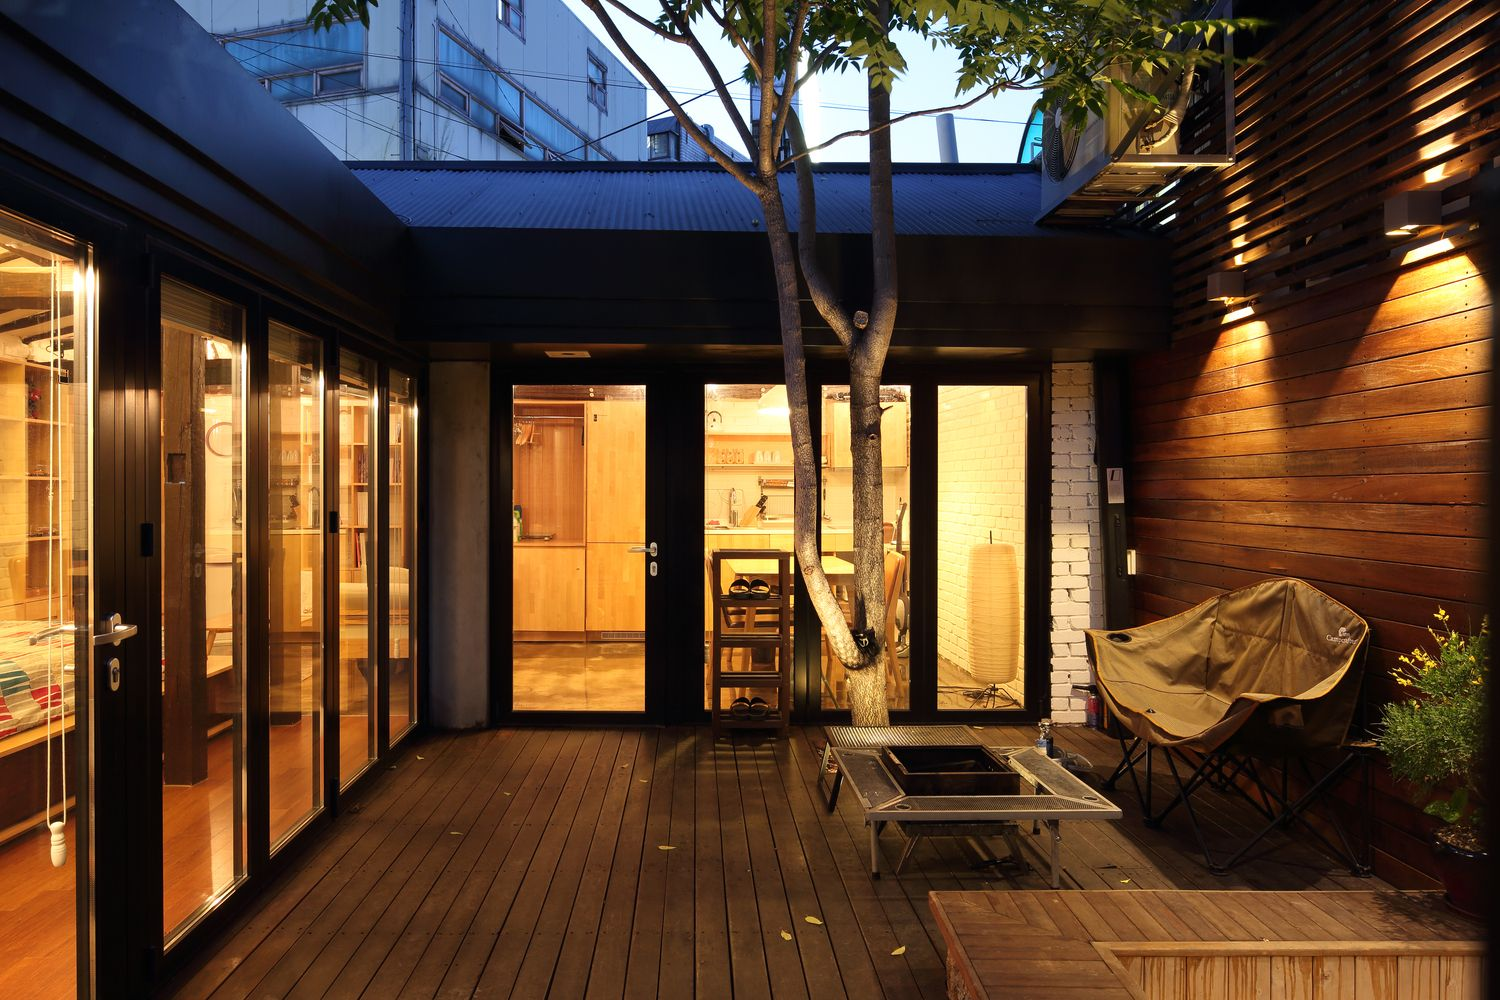 Creative house by z lab south korea courtyard traditional korean house built in 1937 was converted into a contemporary home